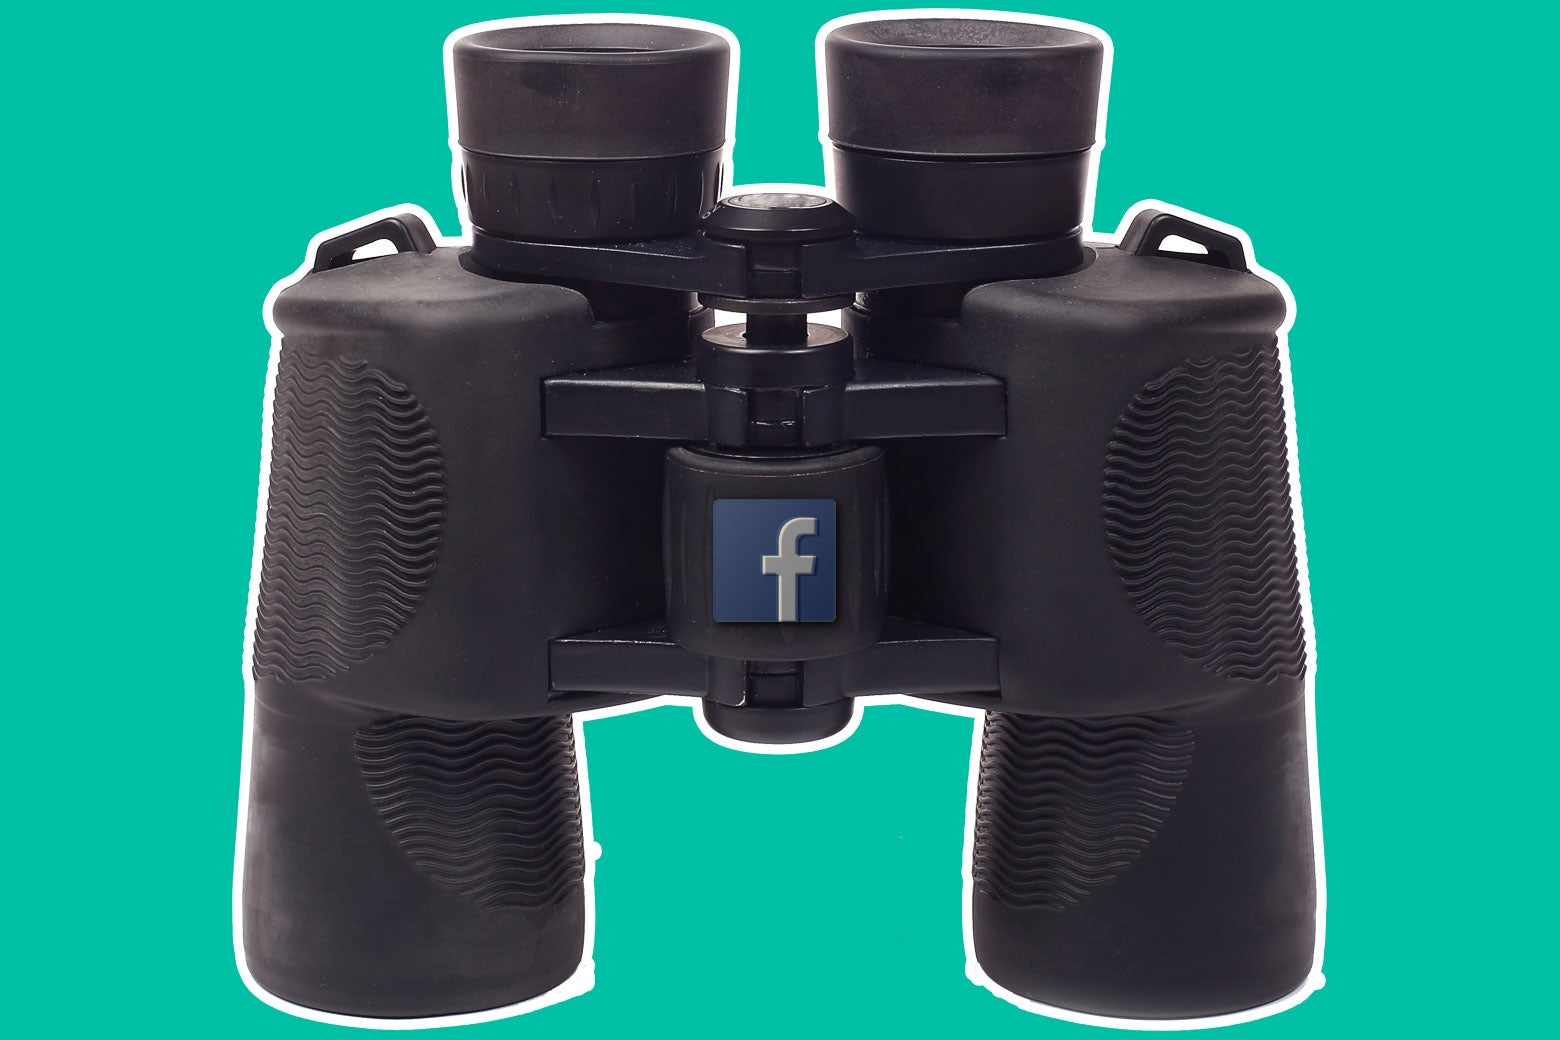 Binoculars with the Facebook logo on them.